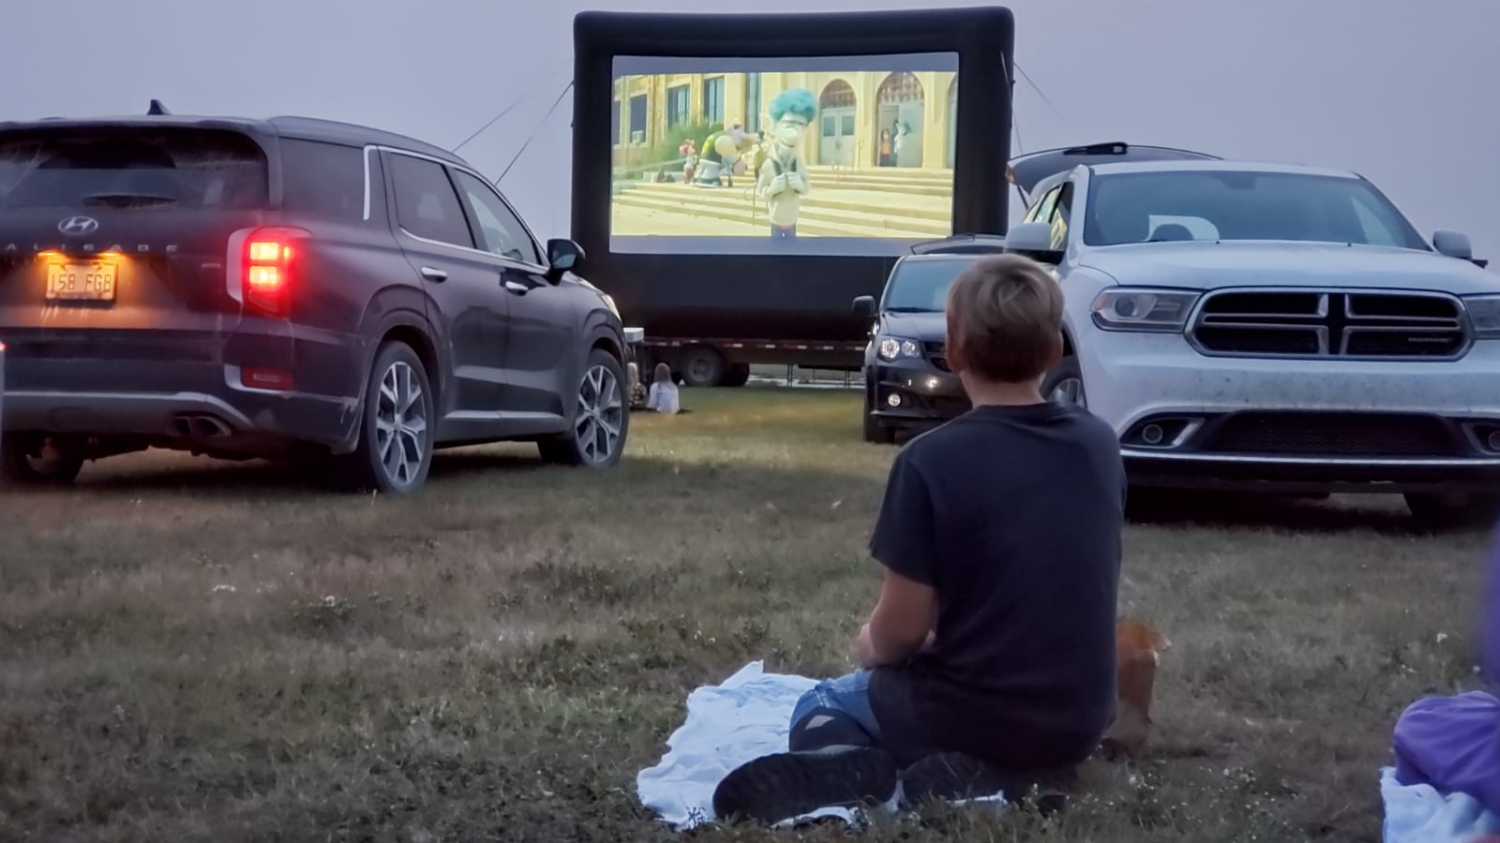 Saskatchewan Outdoor Pop Up Drive In Movie Theatre - Armed With Harmony & Cinema Under The Stars